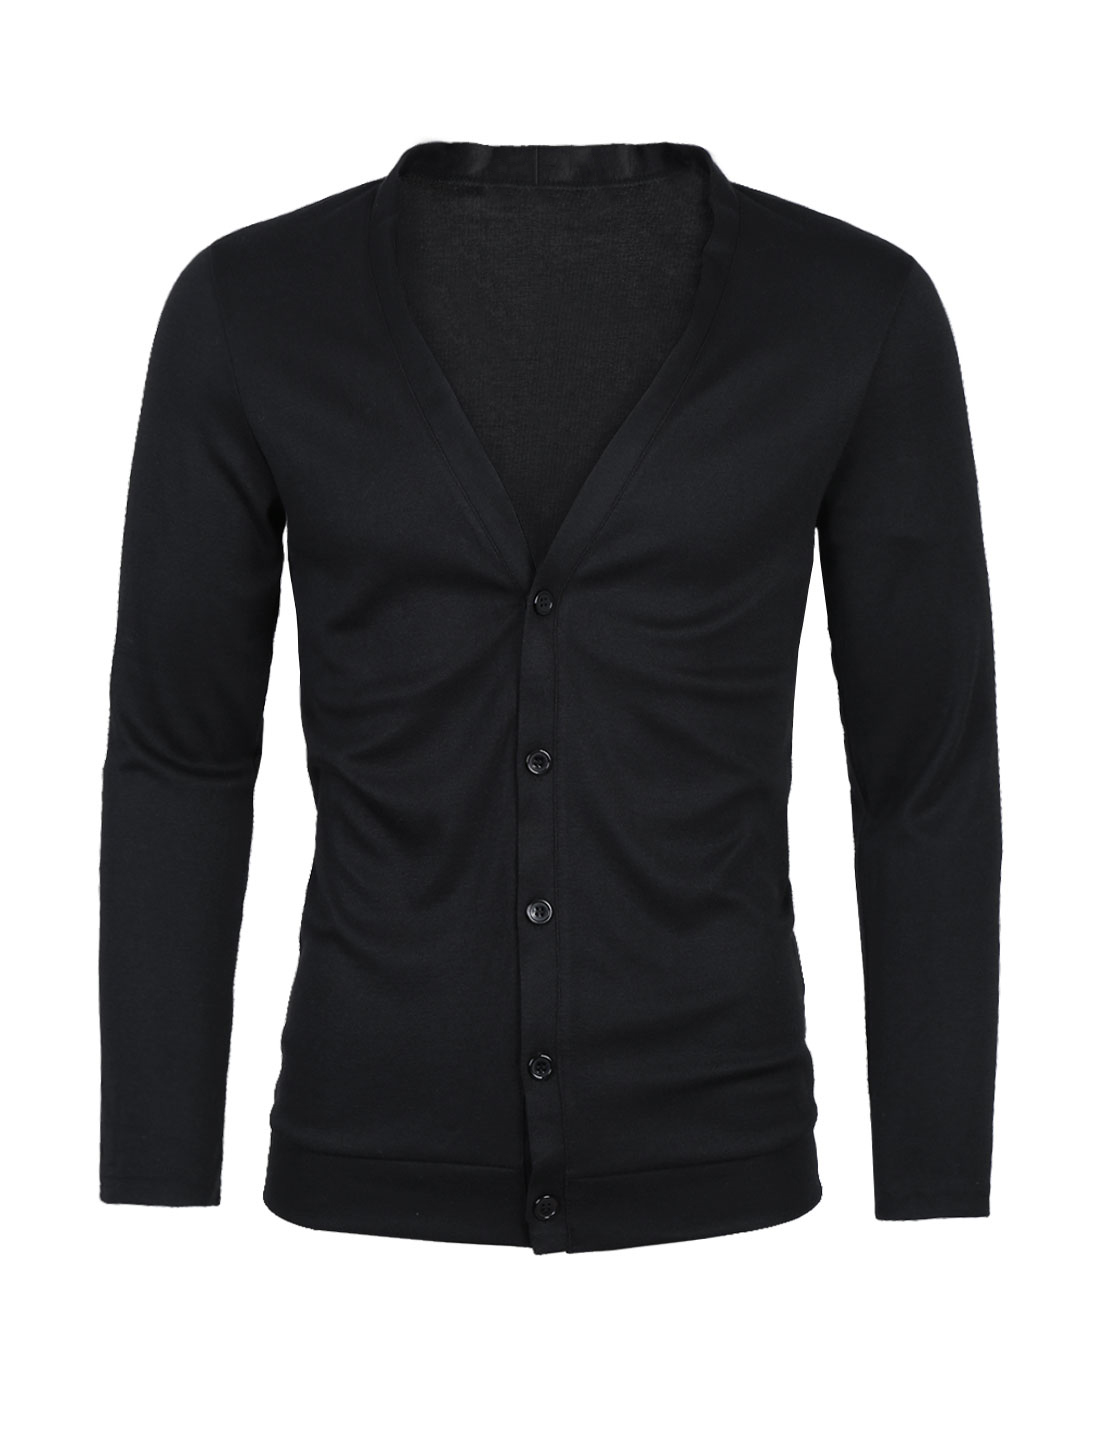 Mens Black Stylish Deep V Neck Single Breasted Solid Color Stretchy Cardigan S